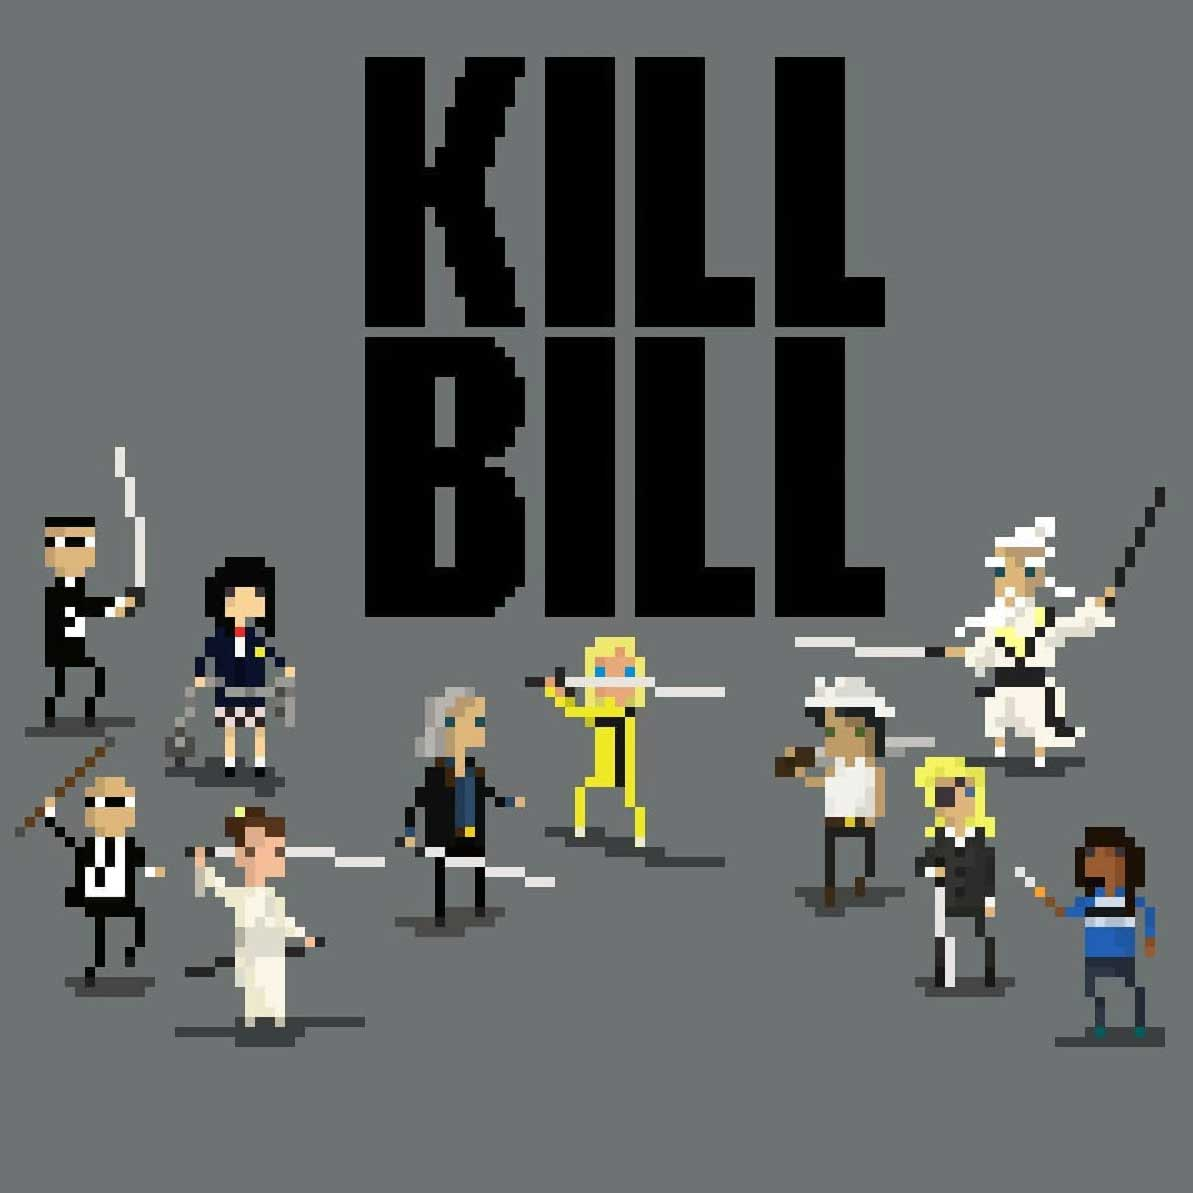 Filme und Serien in verpixeltem 8-Bit-Look chuppixel-pixel-art-movies-tv_03